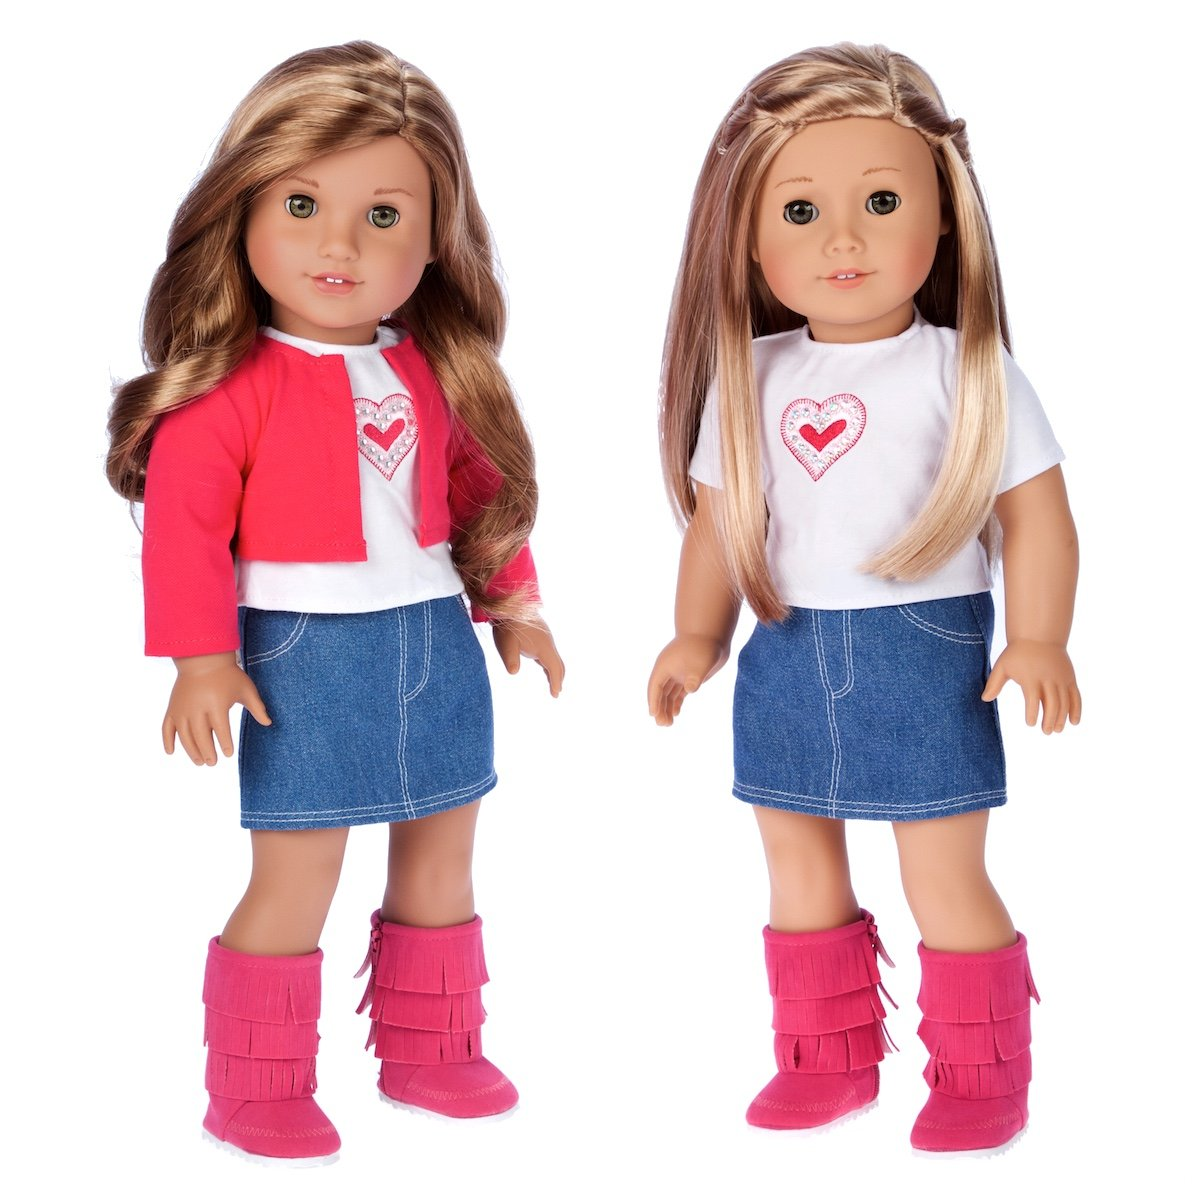 642b9ea921 Amazon.com: Fuchsia Heart - 4 Piece Outfit - Fuchsia Jacket, t-Shirt, Denim  Skirt and Boots - 18 inch Doll Clothes (Doll not Included): Toys & Games